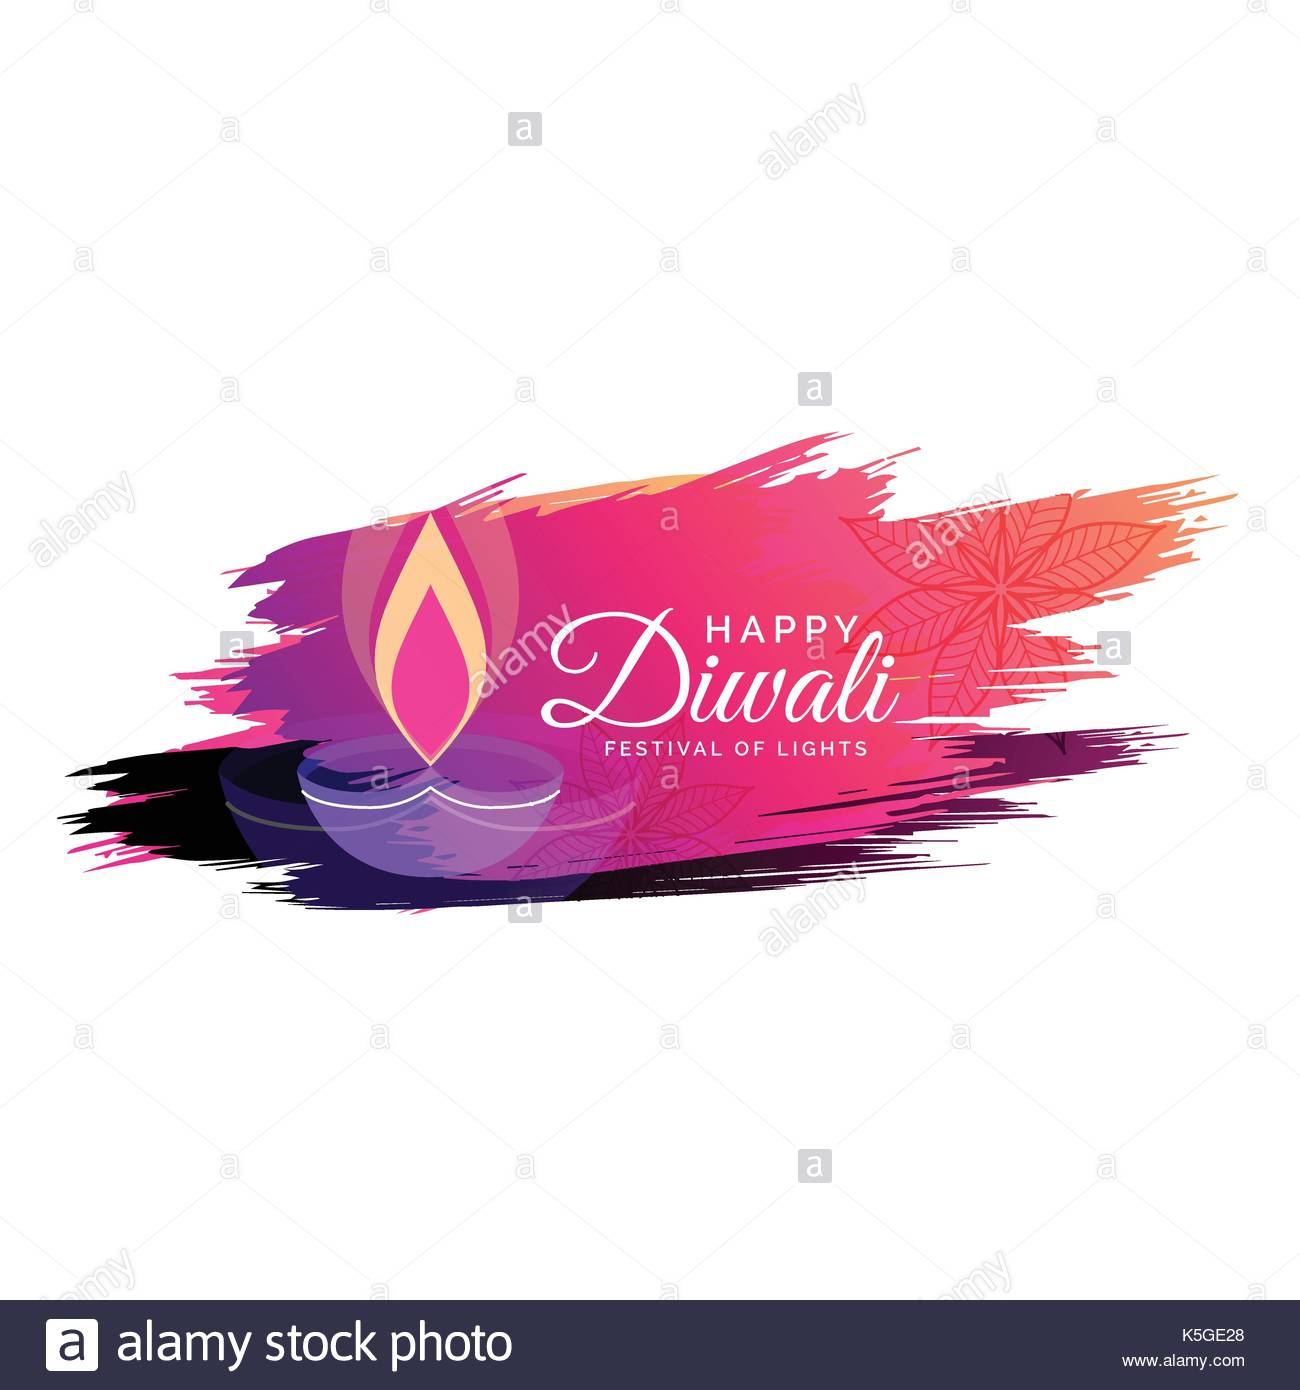 Creative watercolor diwali festival greeting card design with diya creative watercolor diwali festival greeting card design with diya illustration m4hsunfo